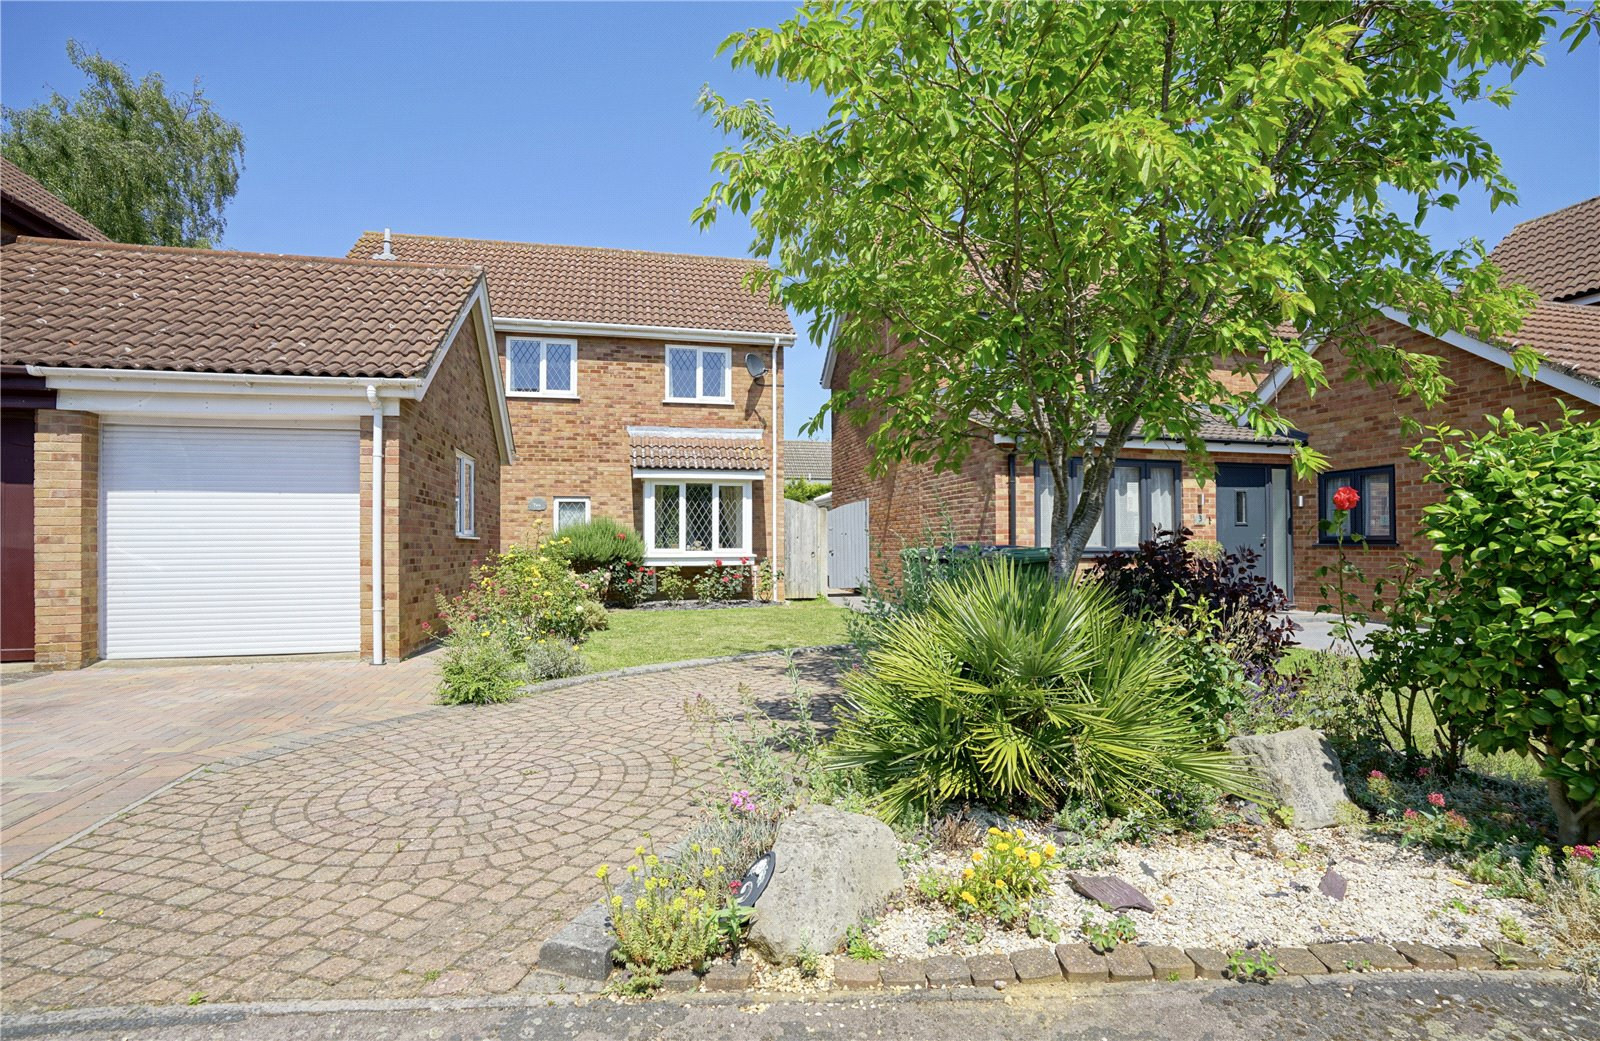 3 bed house for sale in Eaton Ford, Sundew Close, PE19 7GN - Property Image 1